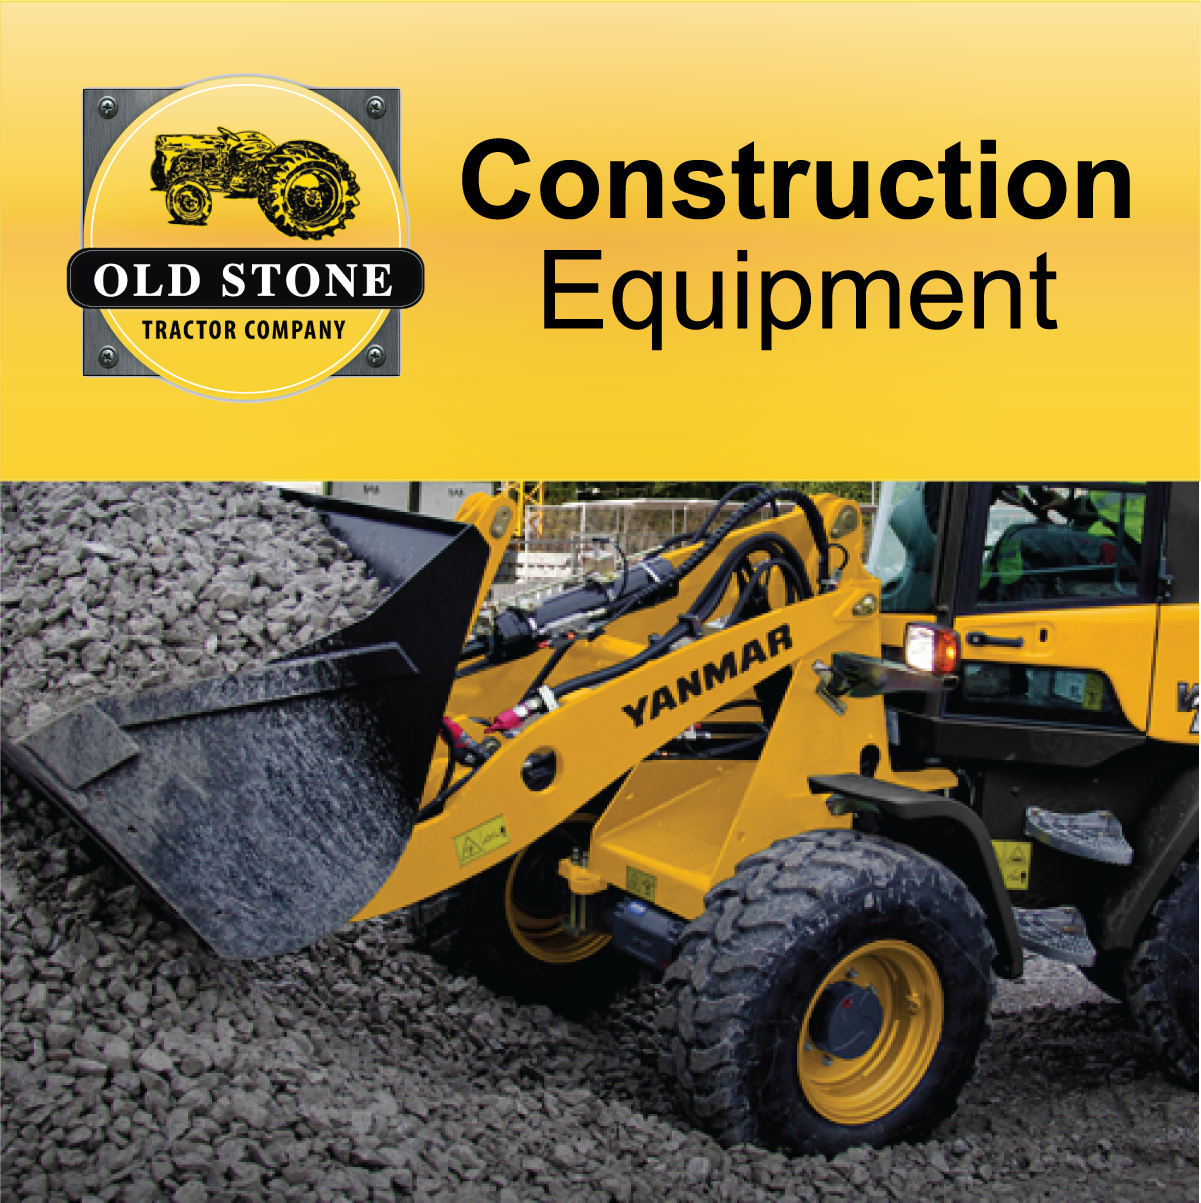 CLICK ON BLOCK TO GO TO CONSTRUCTION EQUIPMENT